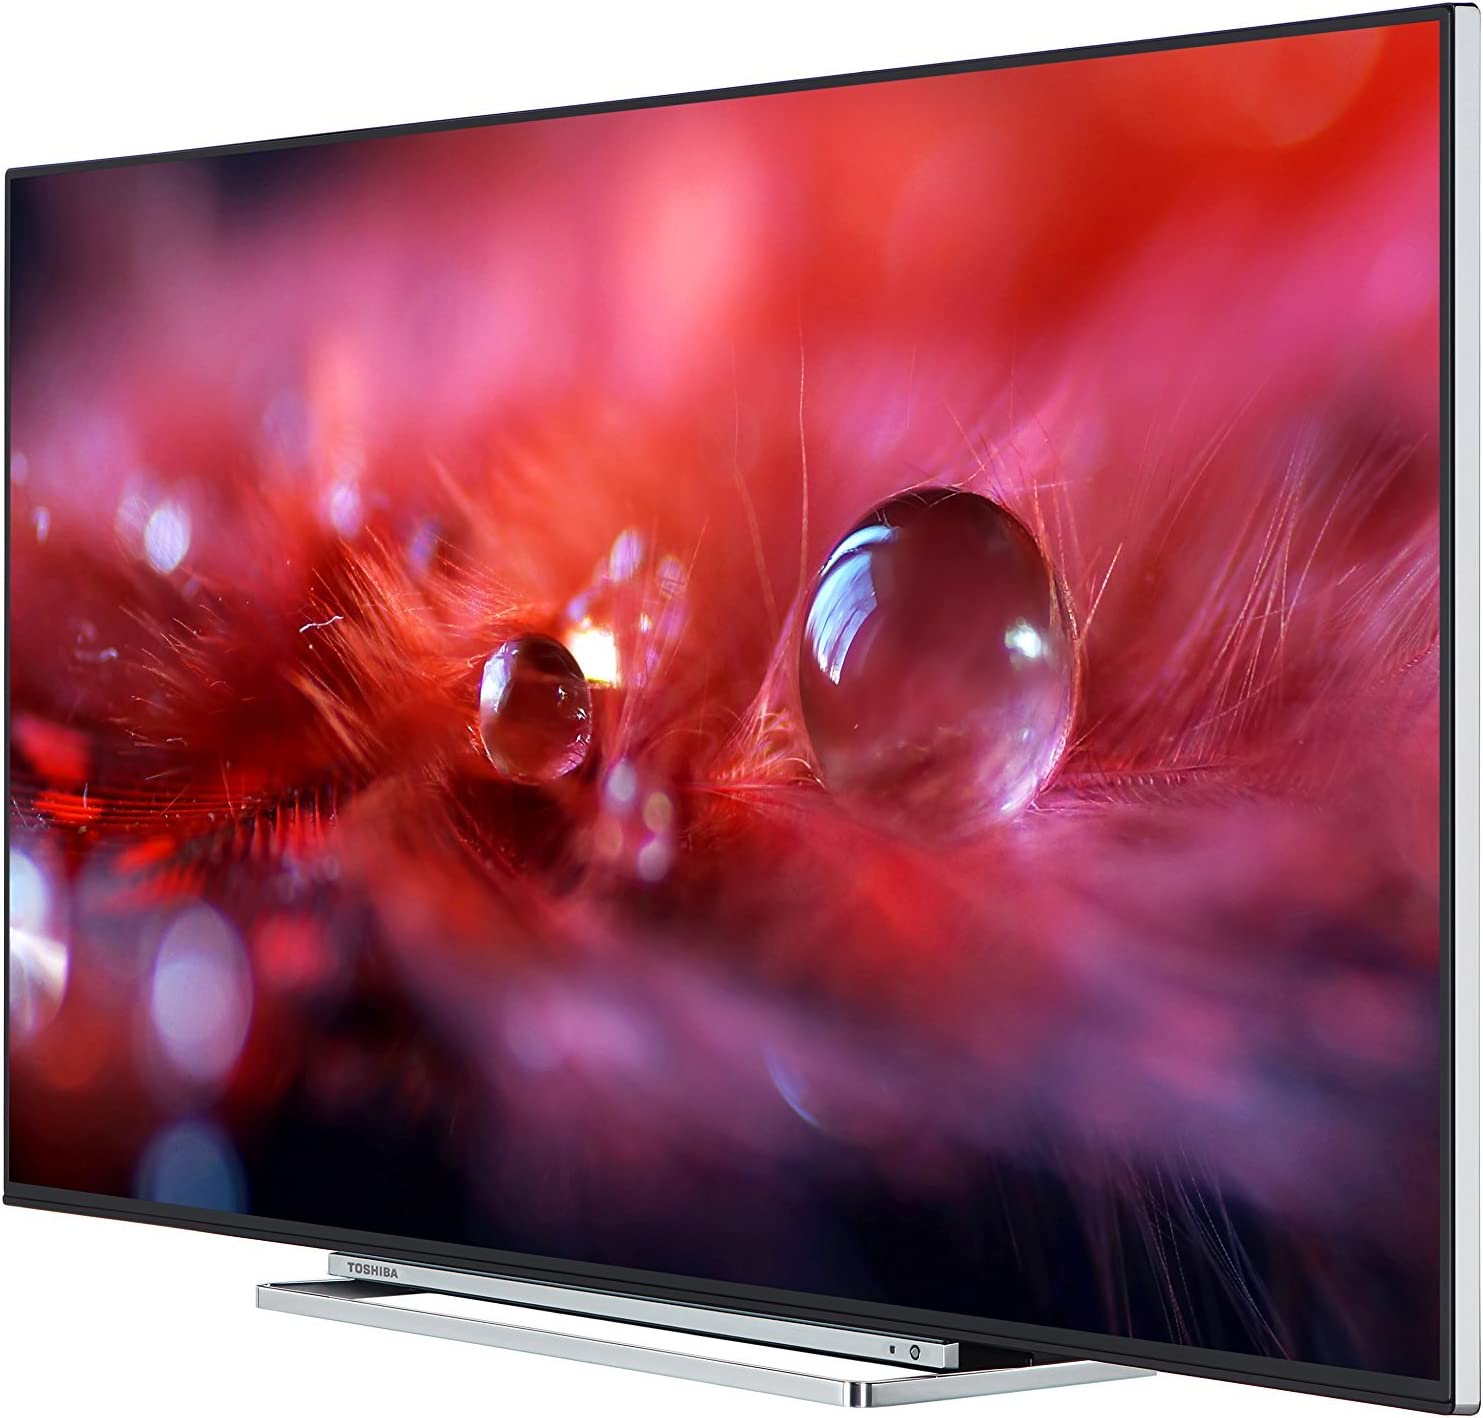 Toshiba 55U5766DB 55-Inch 4K Ultra HD LED Smart TV with Freeview Play - Black TV with a chrome surround (2017 Model) (Certified Refurbished): Amazon.es: Electrónica